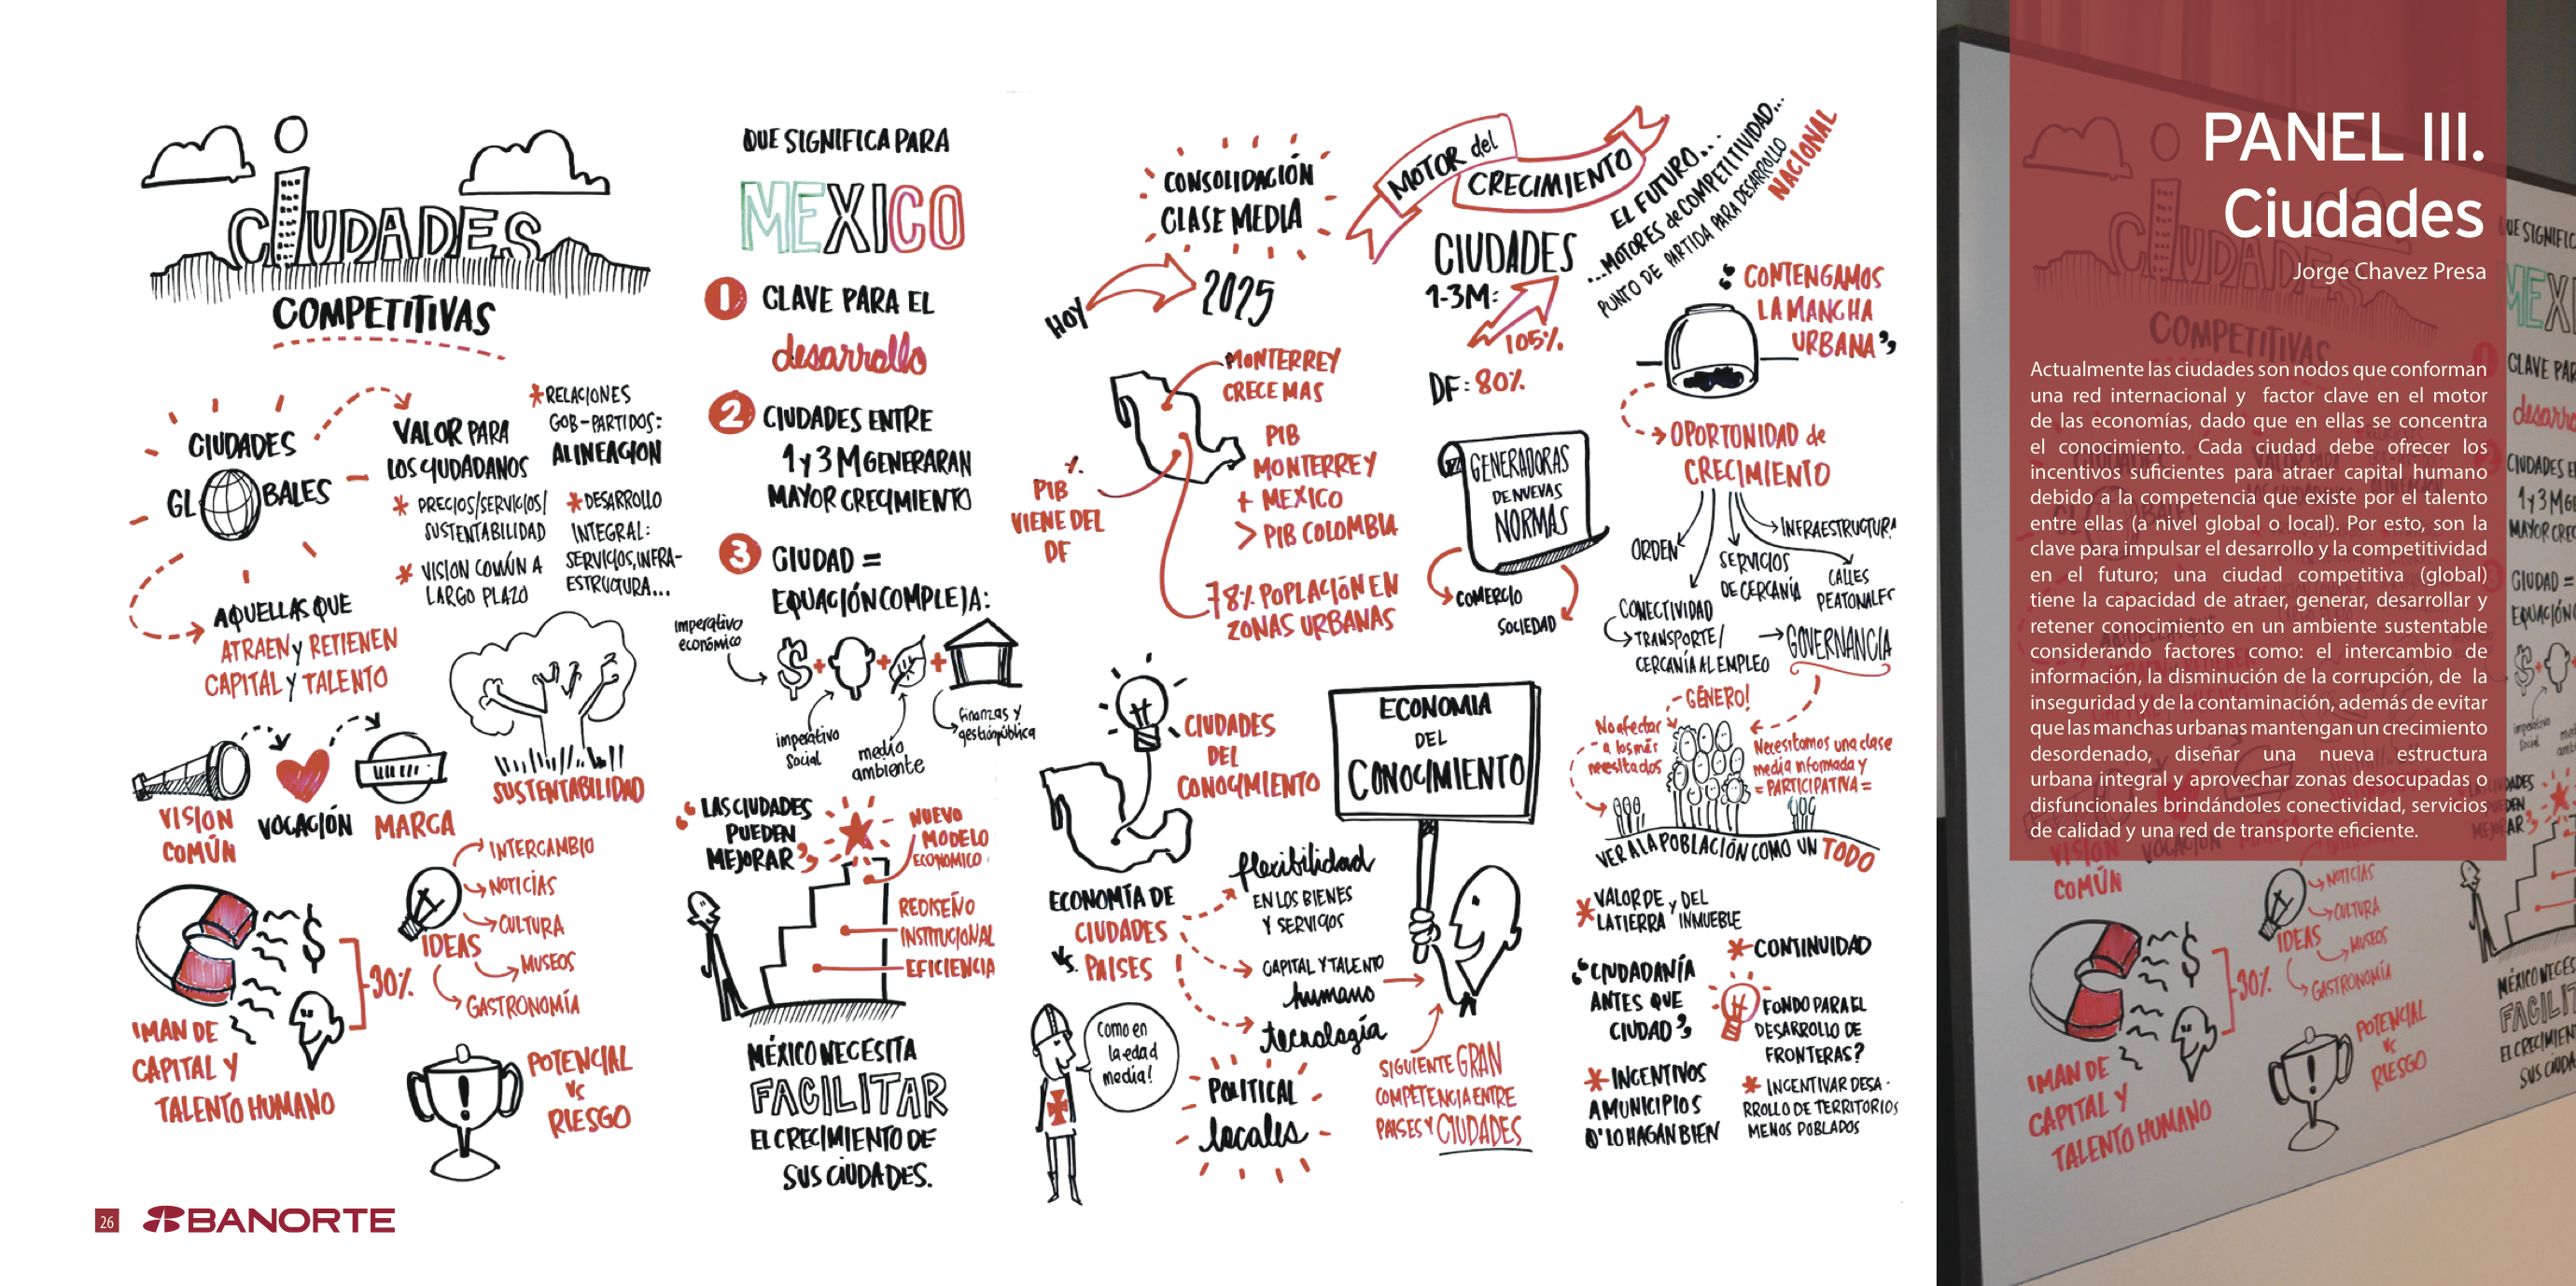 Scribing from a panel discussion focusing on cities as an engine for national growth